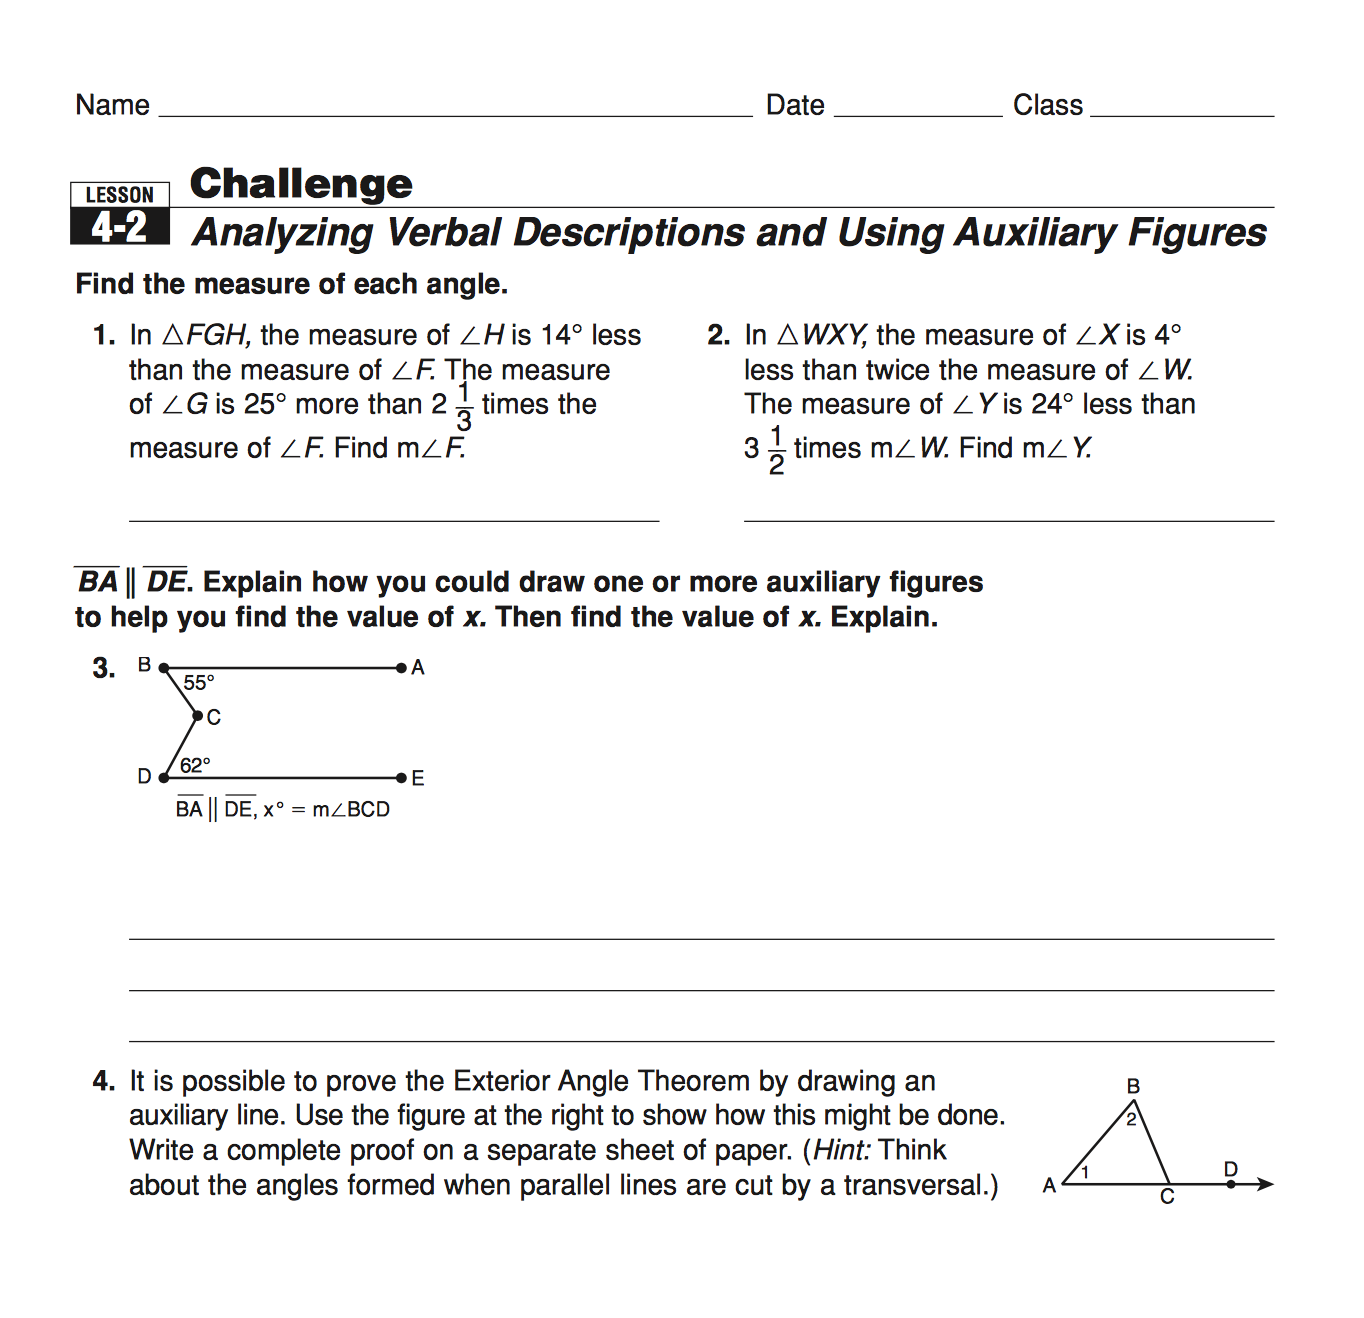 Worksheets Exterior Angle Theorem Worksheet geometry mrs murks math class 4 if you have a question about the homework that was assigned on 4th check out these examples from picture 1 2